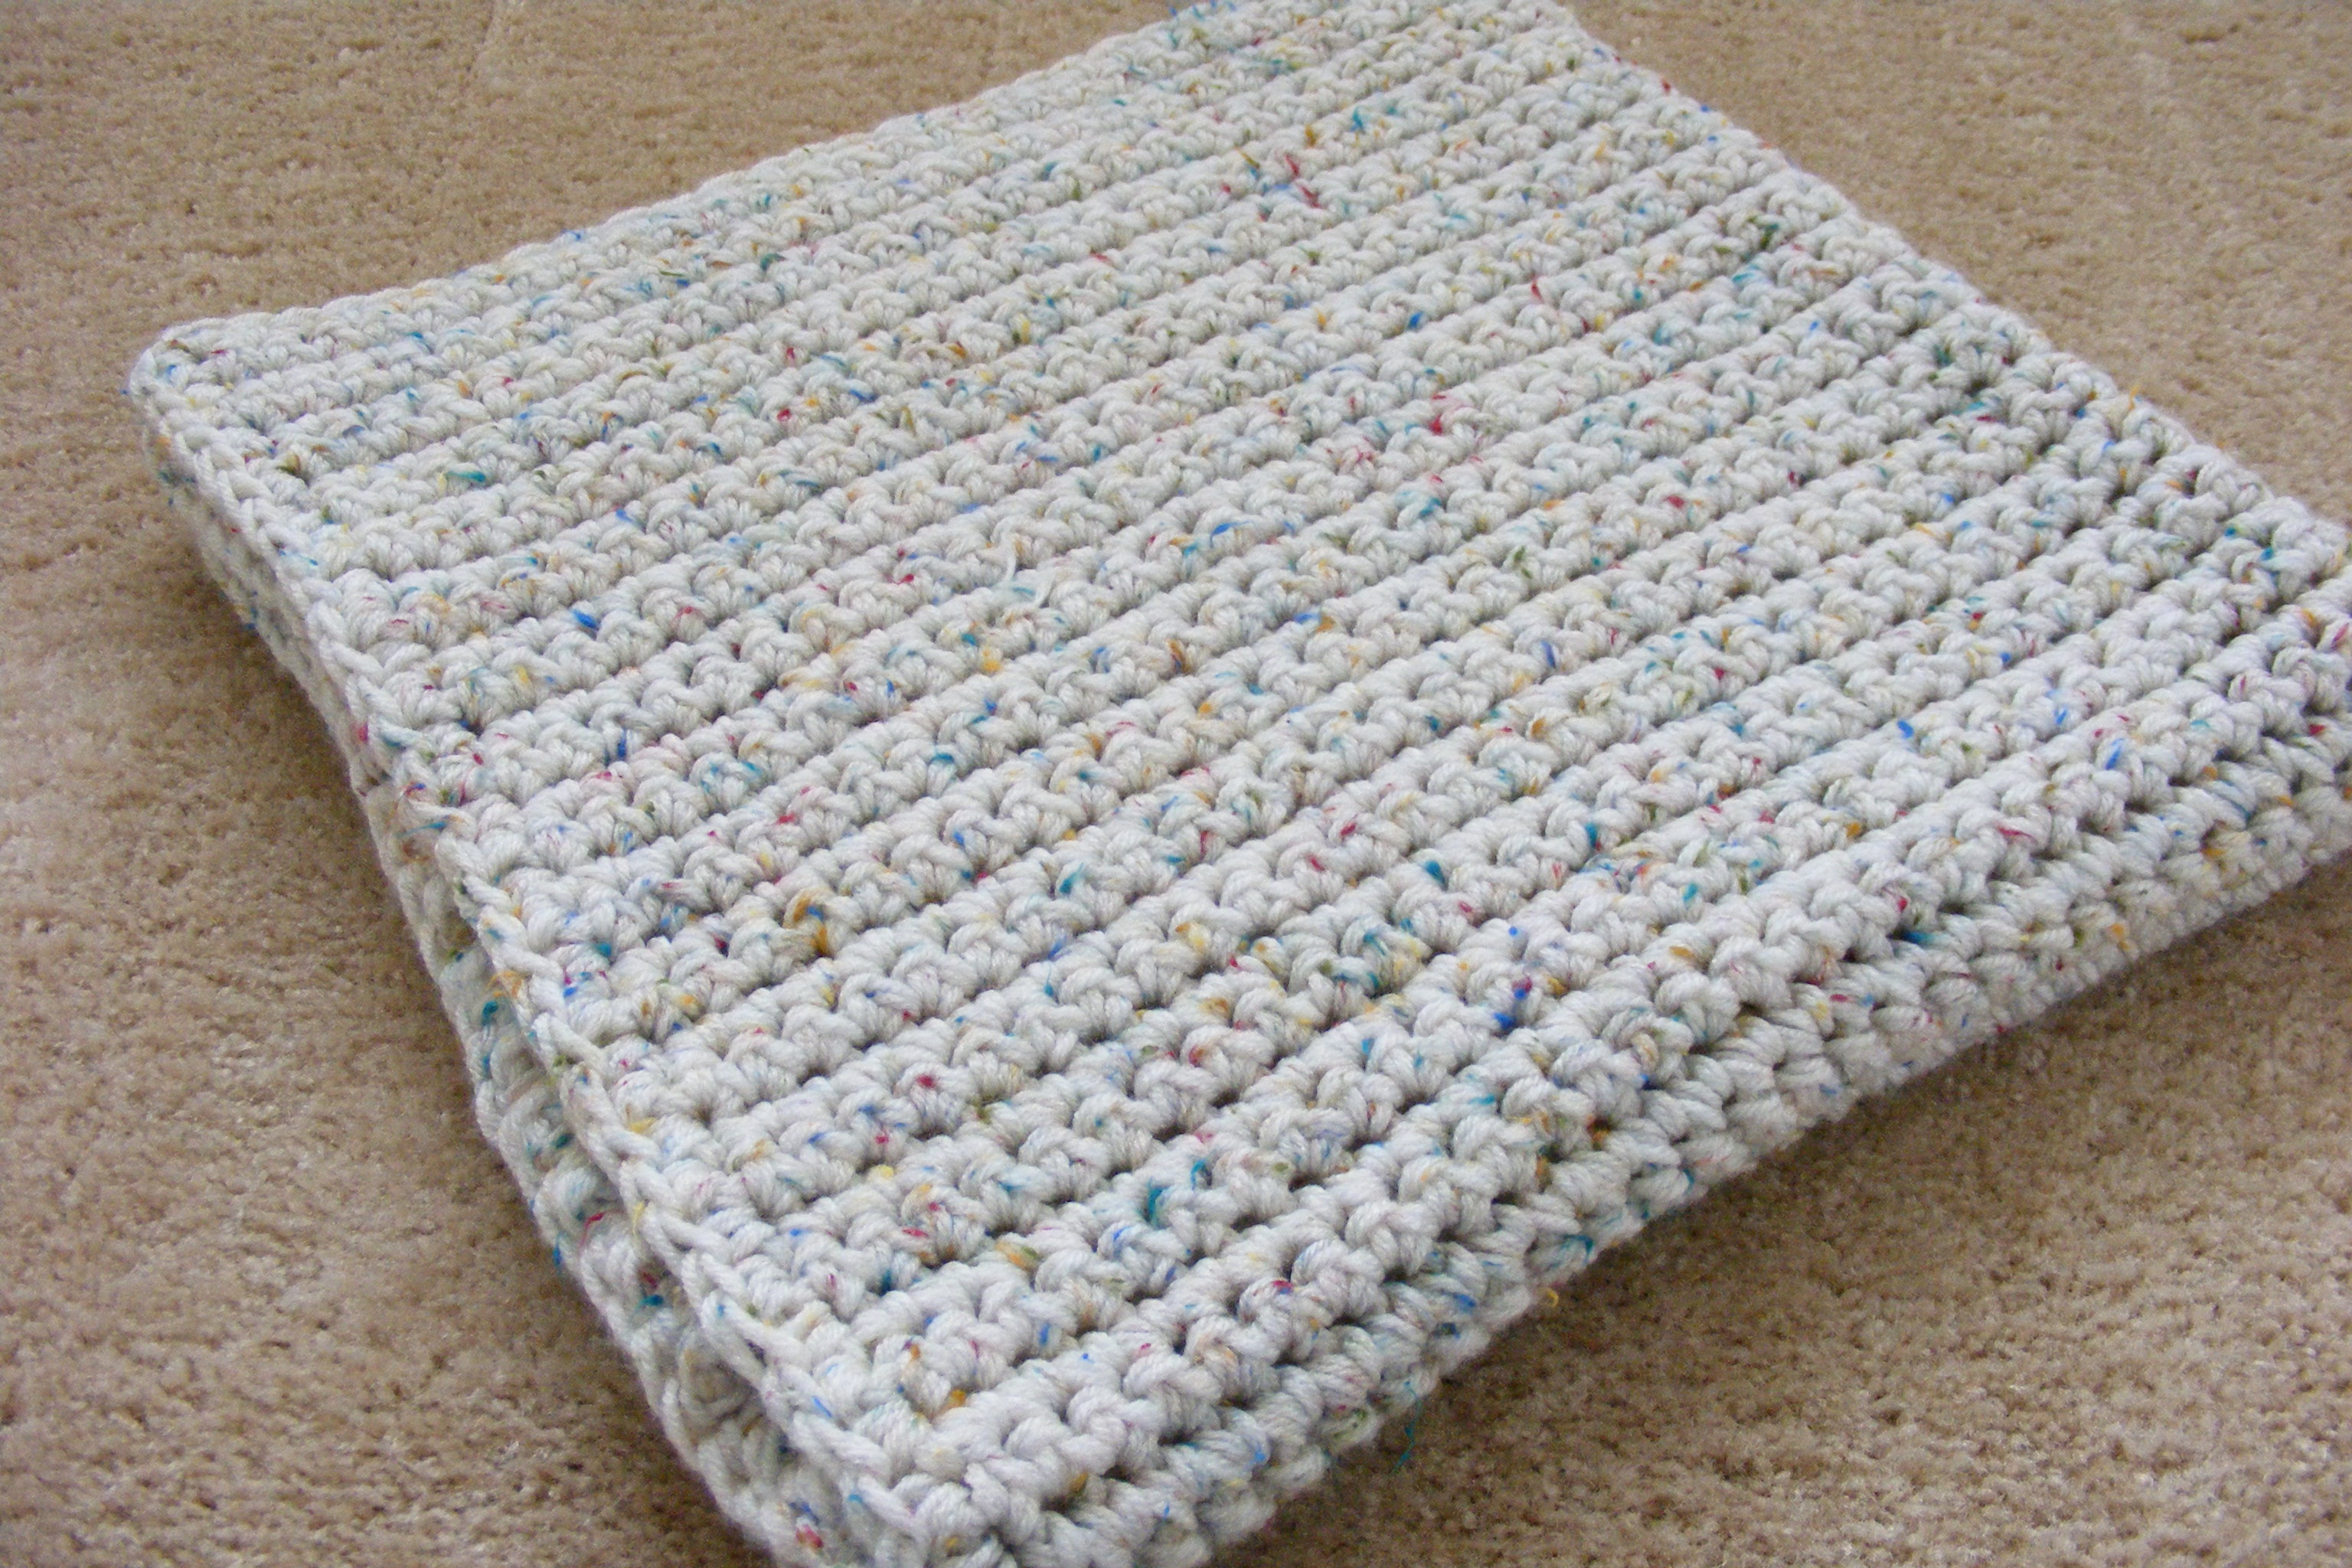 Free Baby Crochet Patterns Candy Afghan Blanket : Single Crochet Baby Blanket GretchKals Yarny Adventures